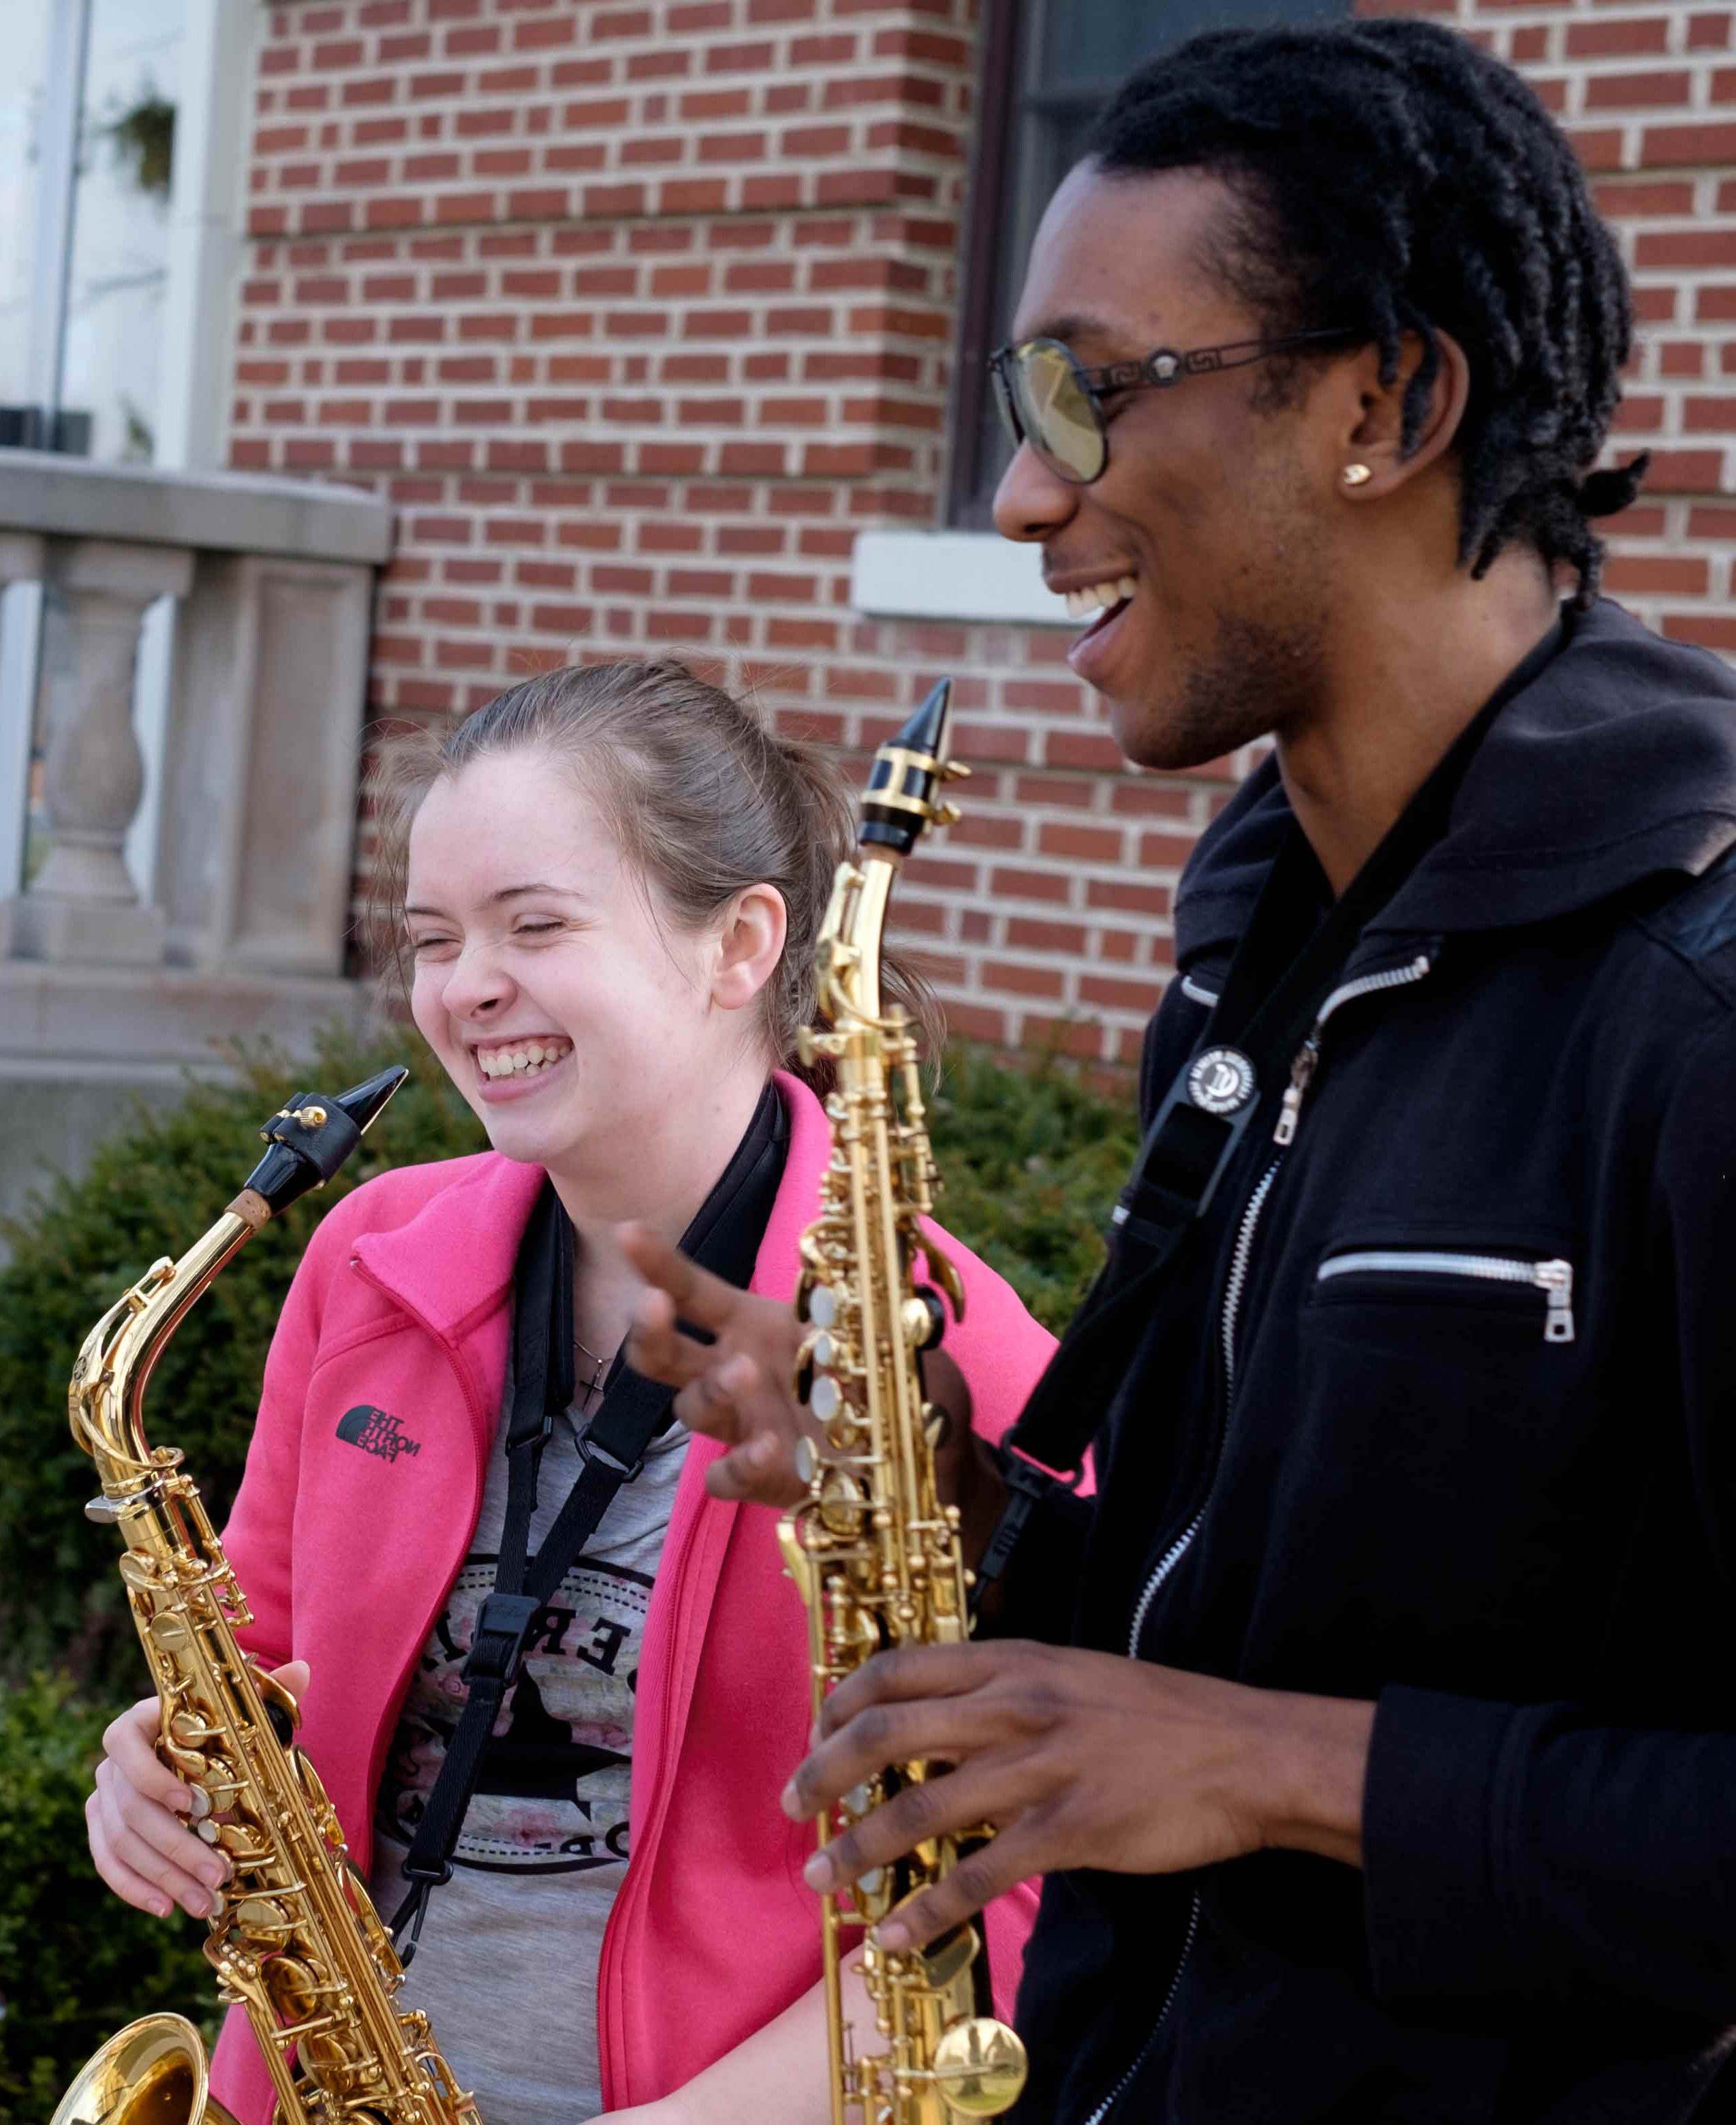 music students playing outside